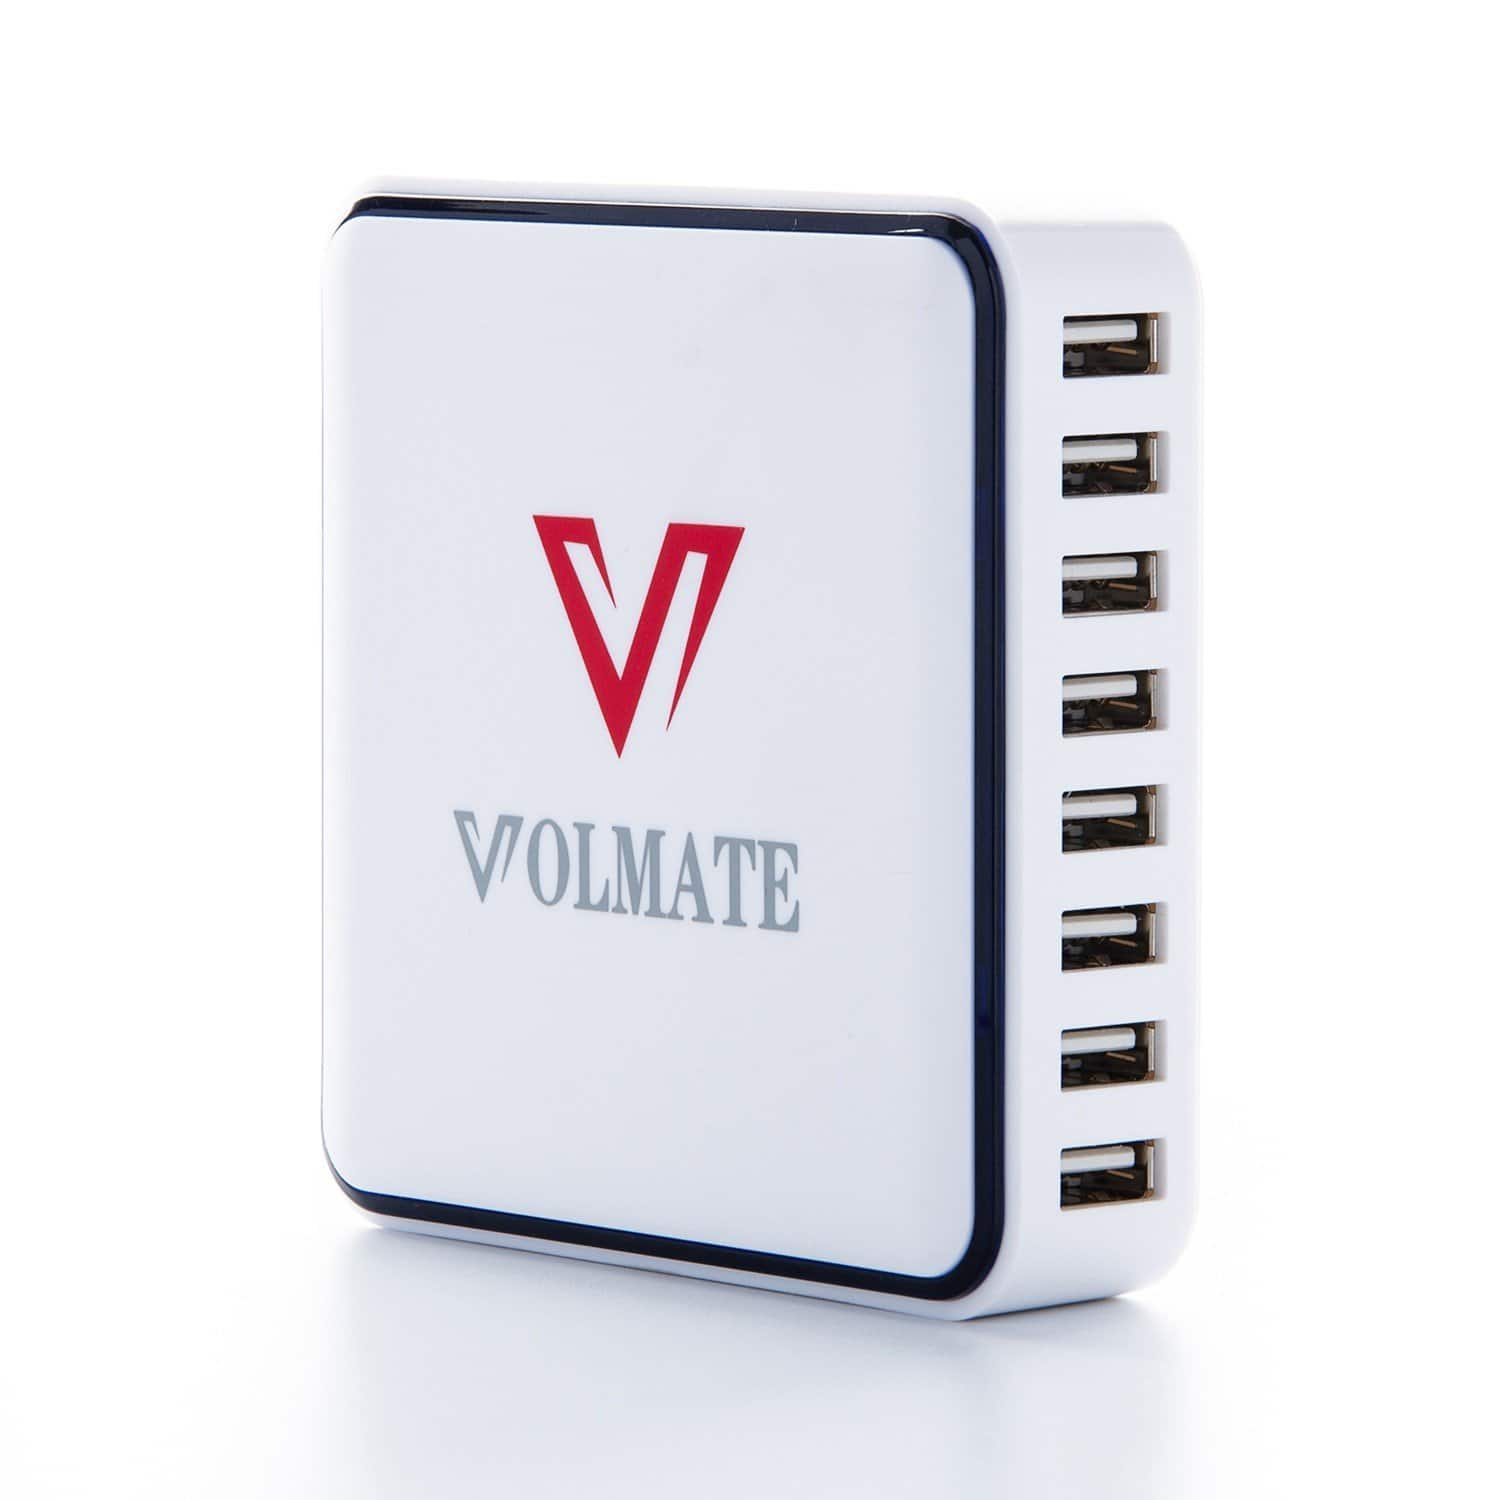 Volmate 12A (60W) 8-Port White Smart USB Desktop Charger with Auto Detect Technology (VOL60W-8P) for $16.97 AC + FSSS or FS w/ Prime @ Amazon.com